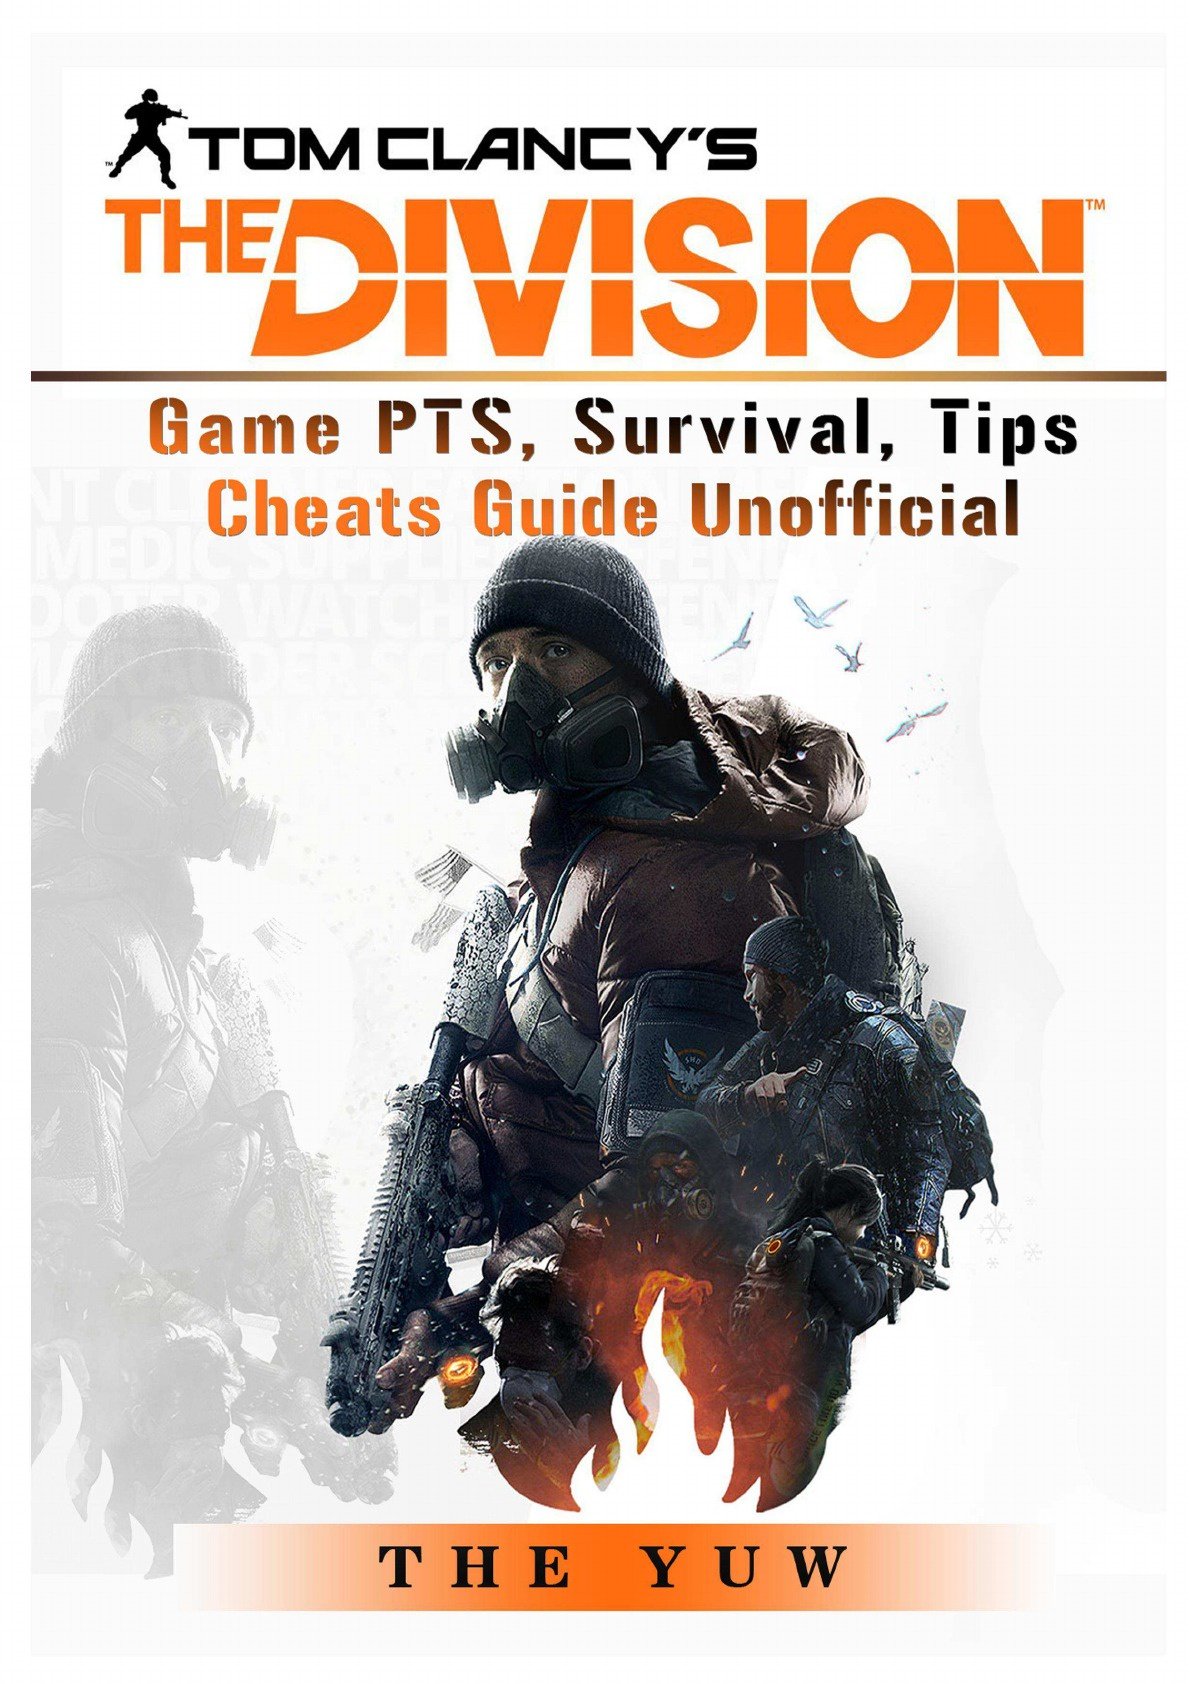 The Yuw Tom Clancys the Division Game PTS, Survival, Tips Cheats Guide Unofficial edge c how to write your best story ever top tips and trade secrets from the experts